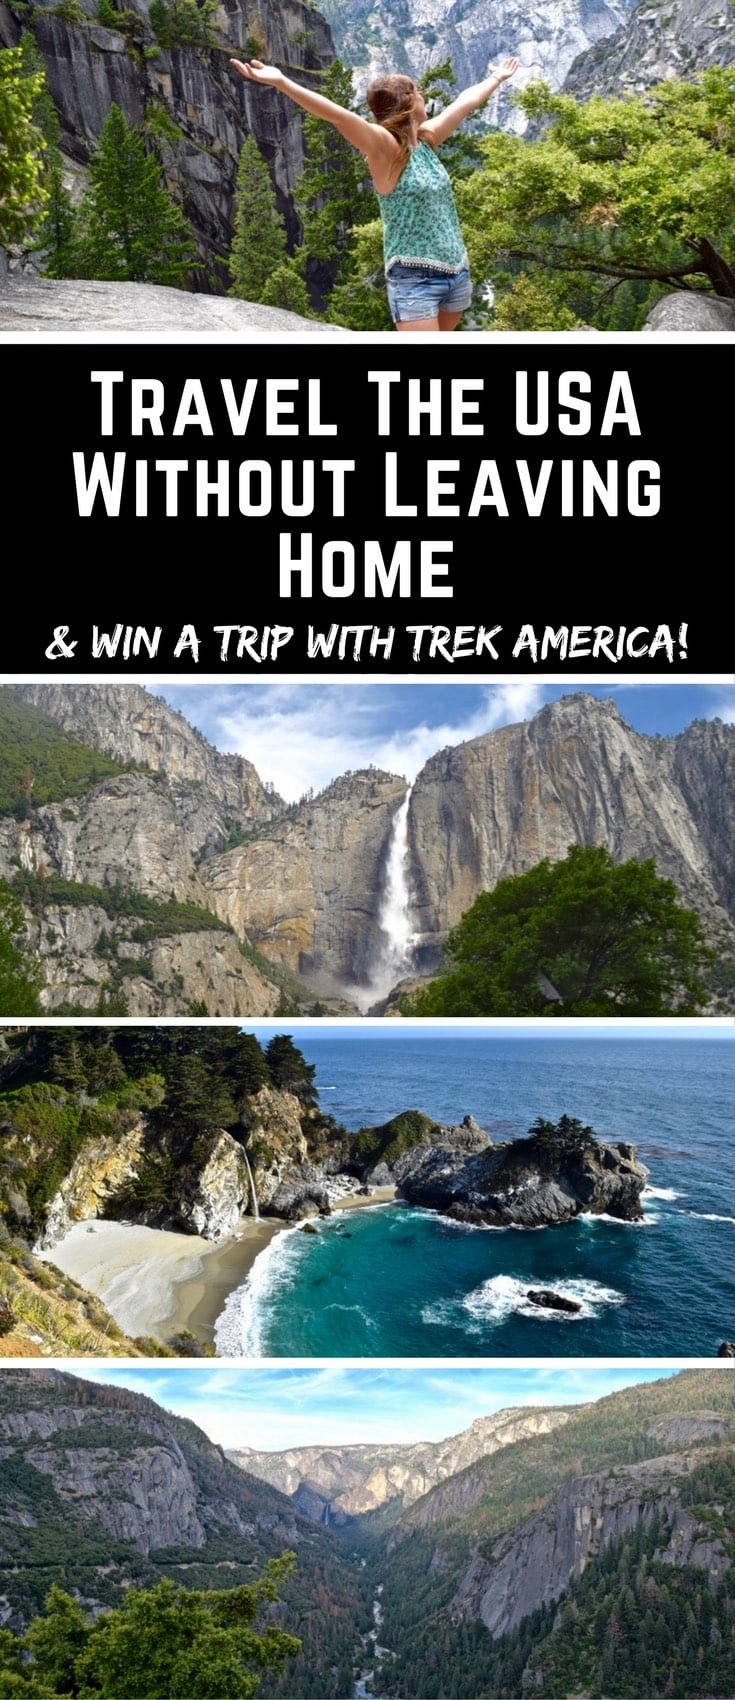 Travel The USA Without Leaving Home (and win a trip with Trek America!)